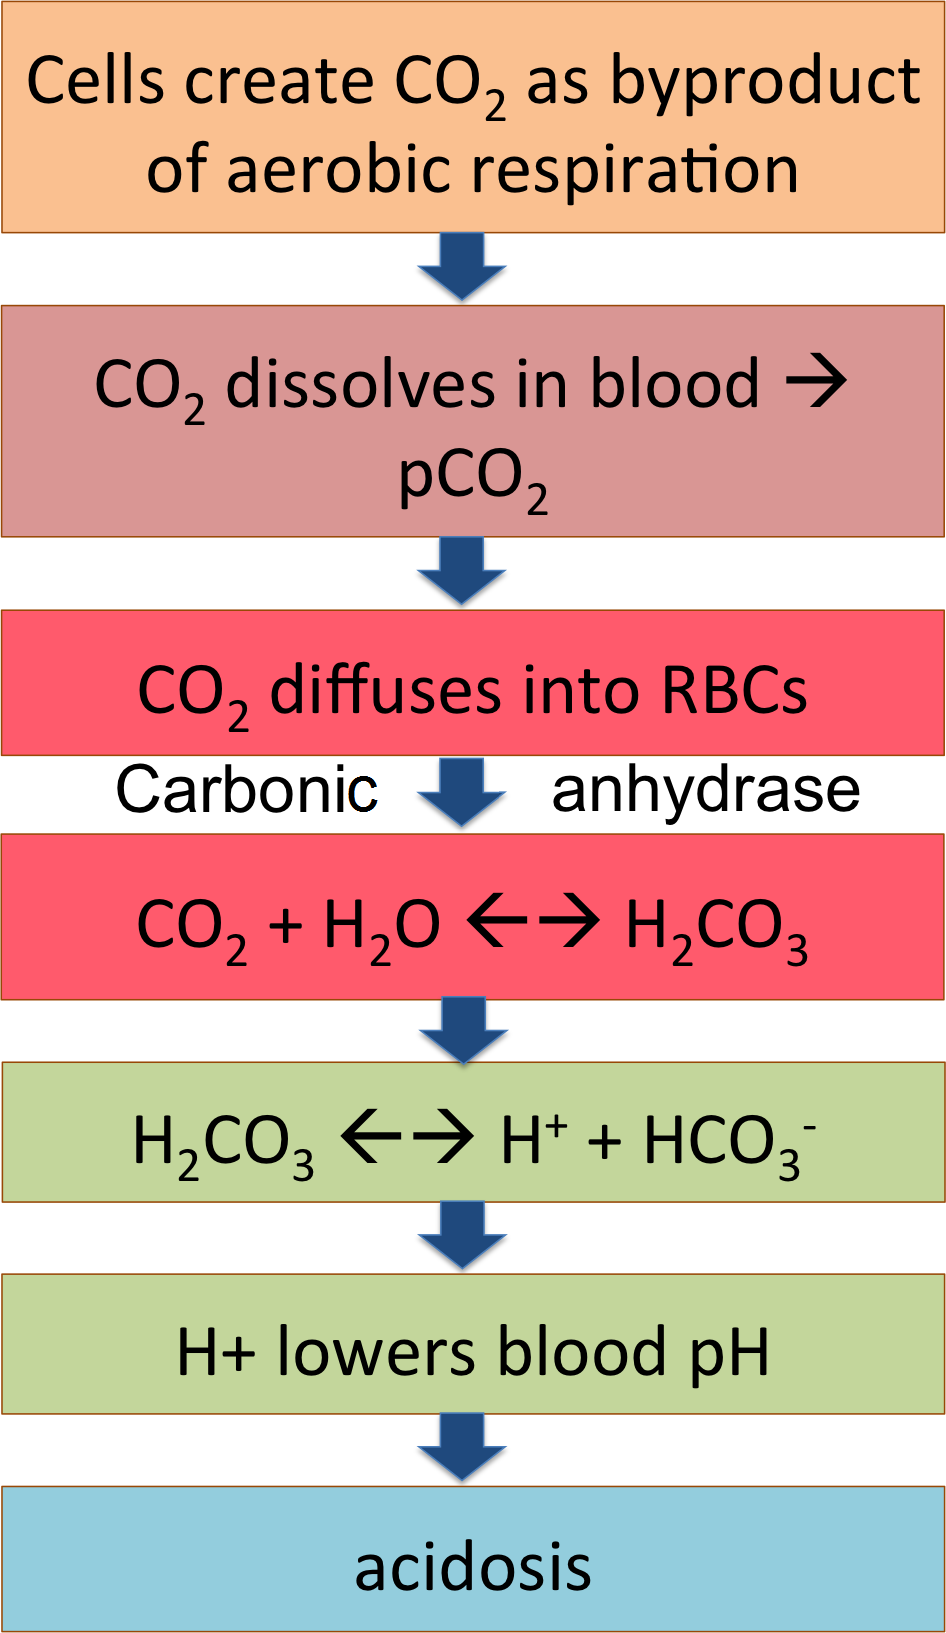 Multiple pages co2 the flow chart summarizes this pathway co2 from the cells becoming carbonic acid in the blood and dissociating to release h lowering blood ph nvjuhfo Image collections